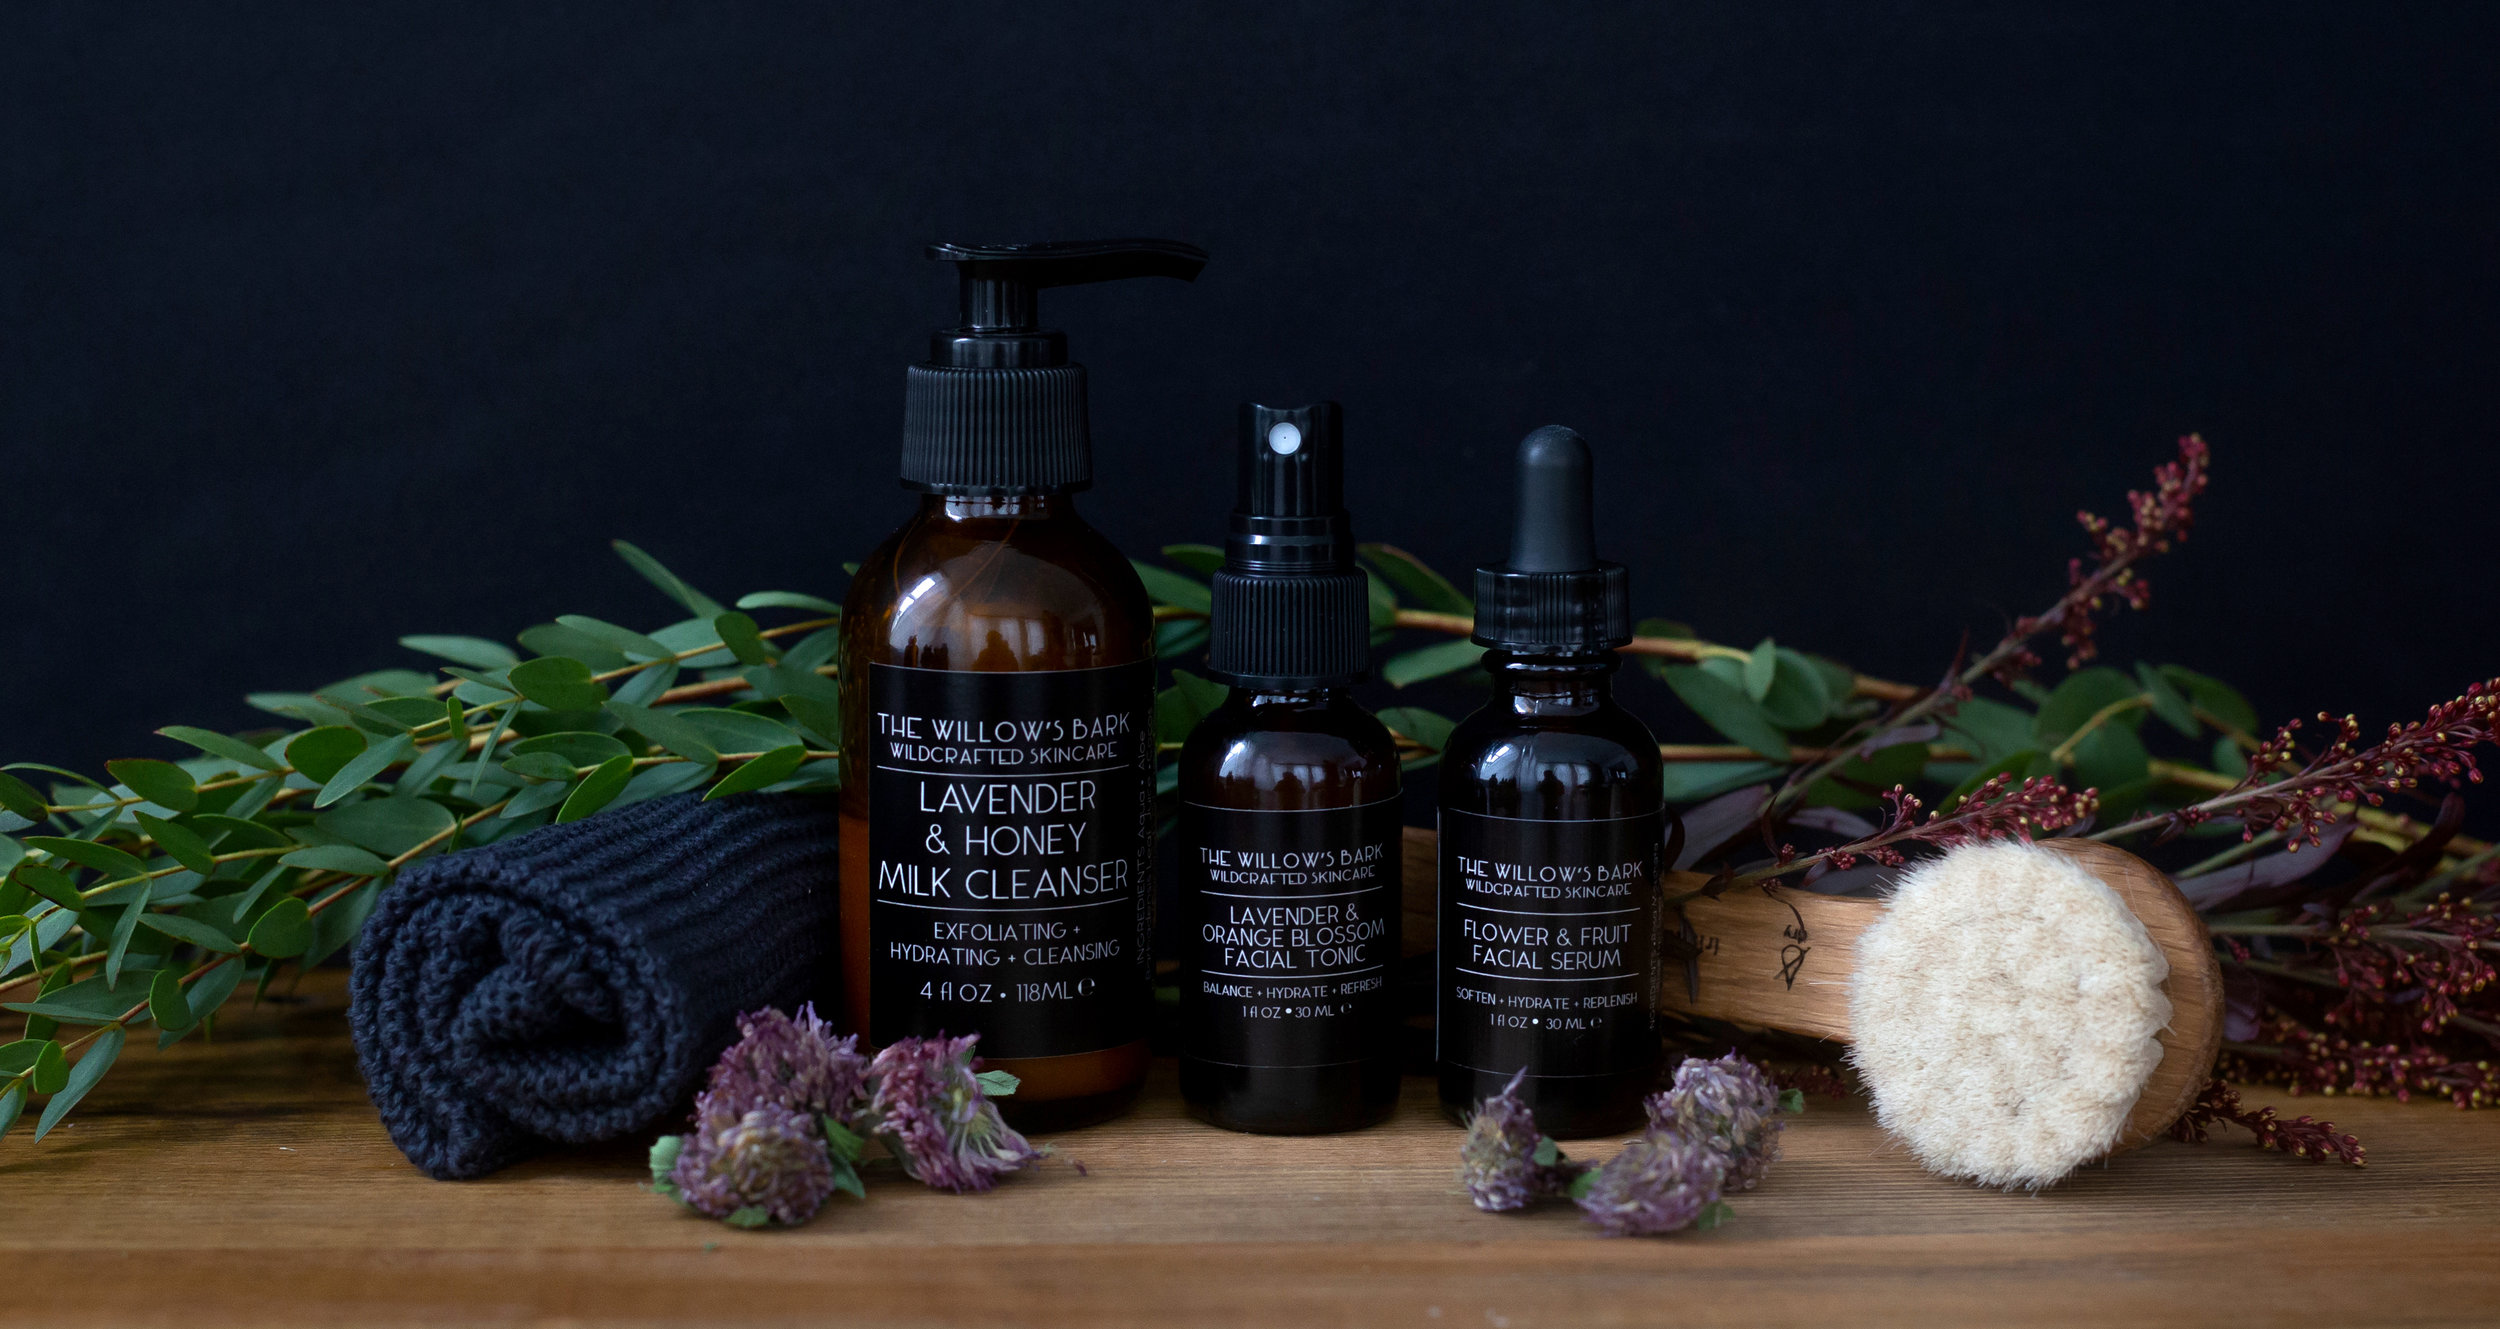 SIMPLIFY YOUR BEAUTY ROUTINEwith 3, no-fuss cleansing and purifying products - RECEIVE 6 WEEK SUPPLY WITH A SUBSCRIPTION